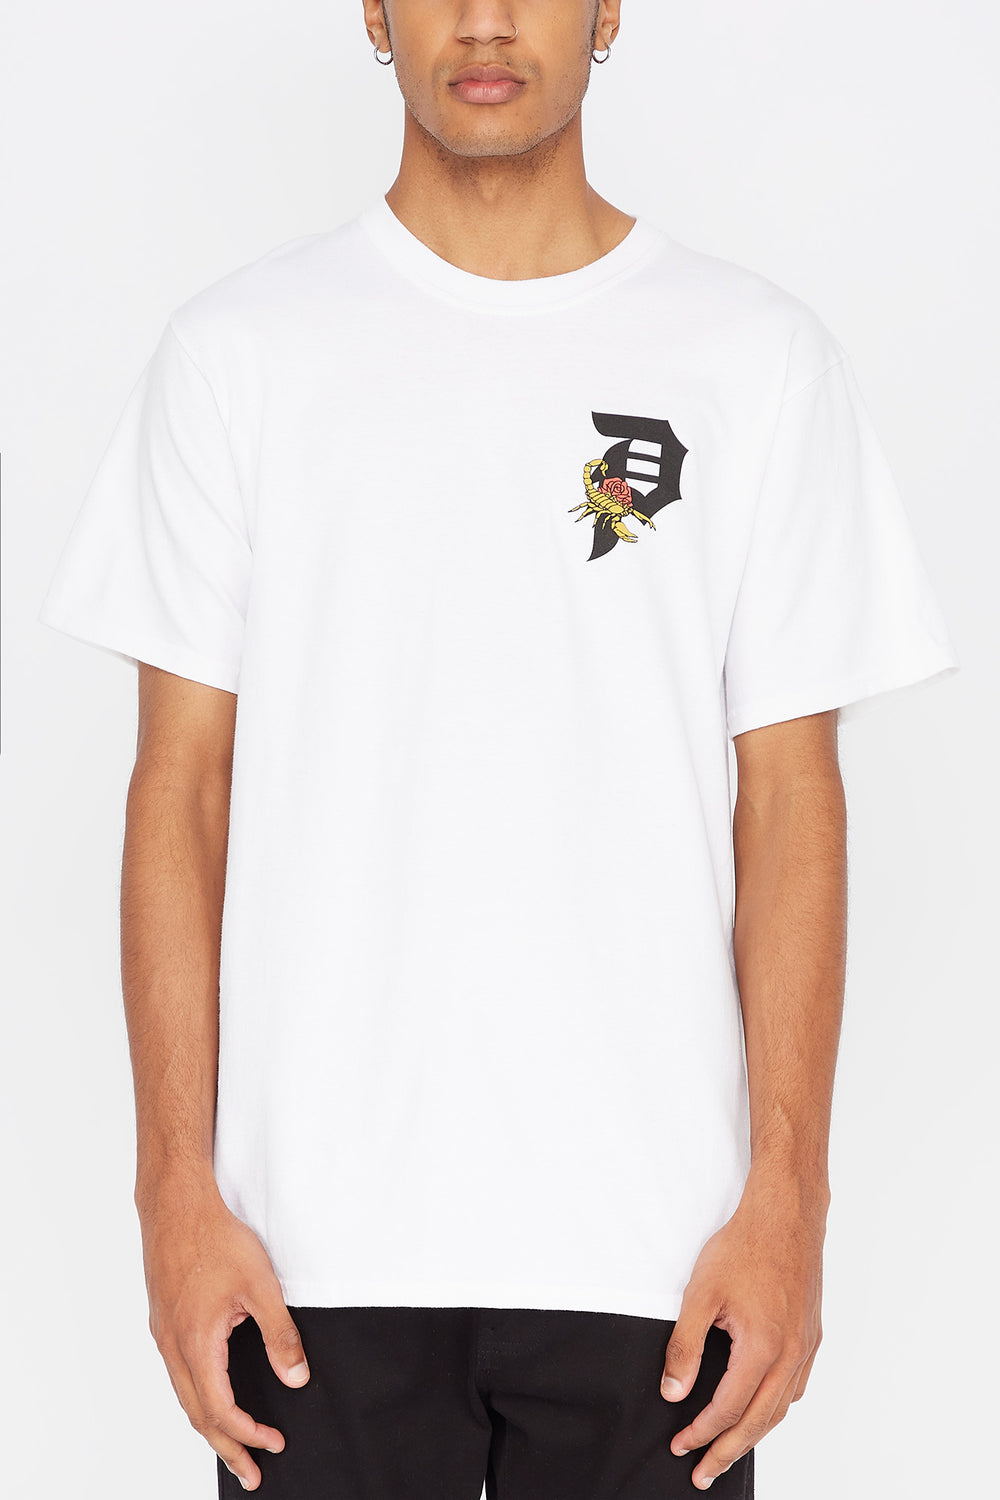 T-shirt Dirty P Scorpio Primitive Homme Blanc